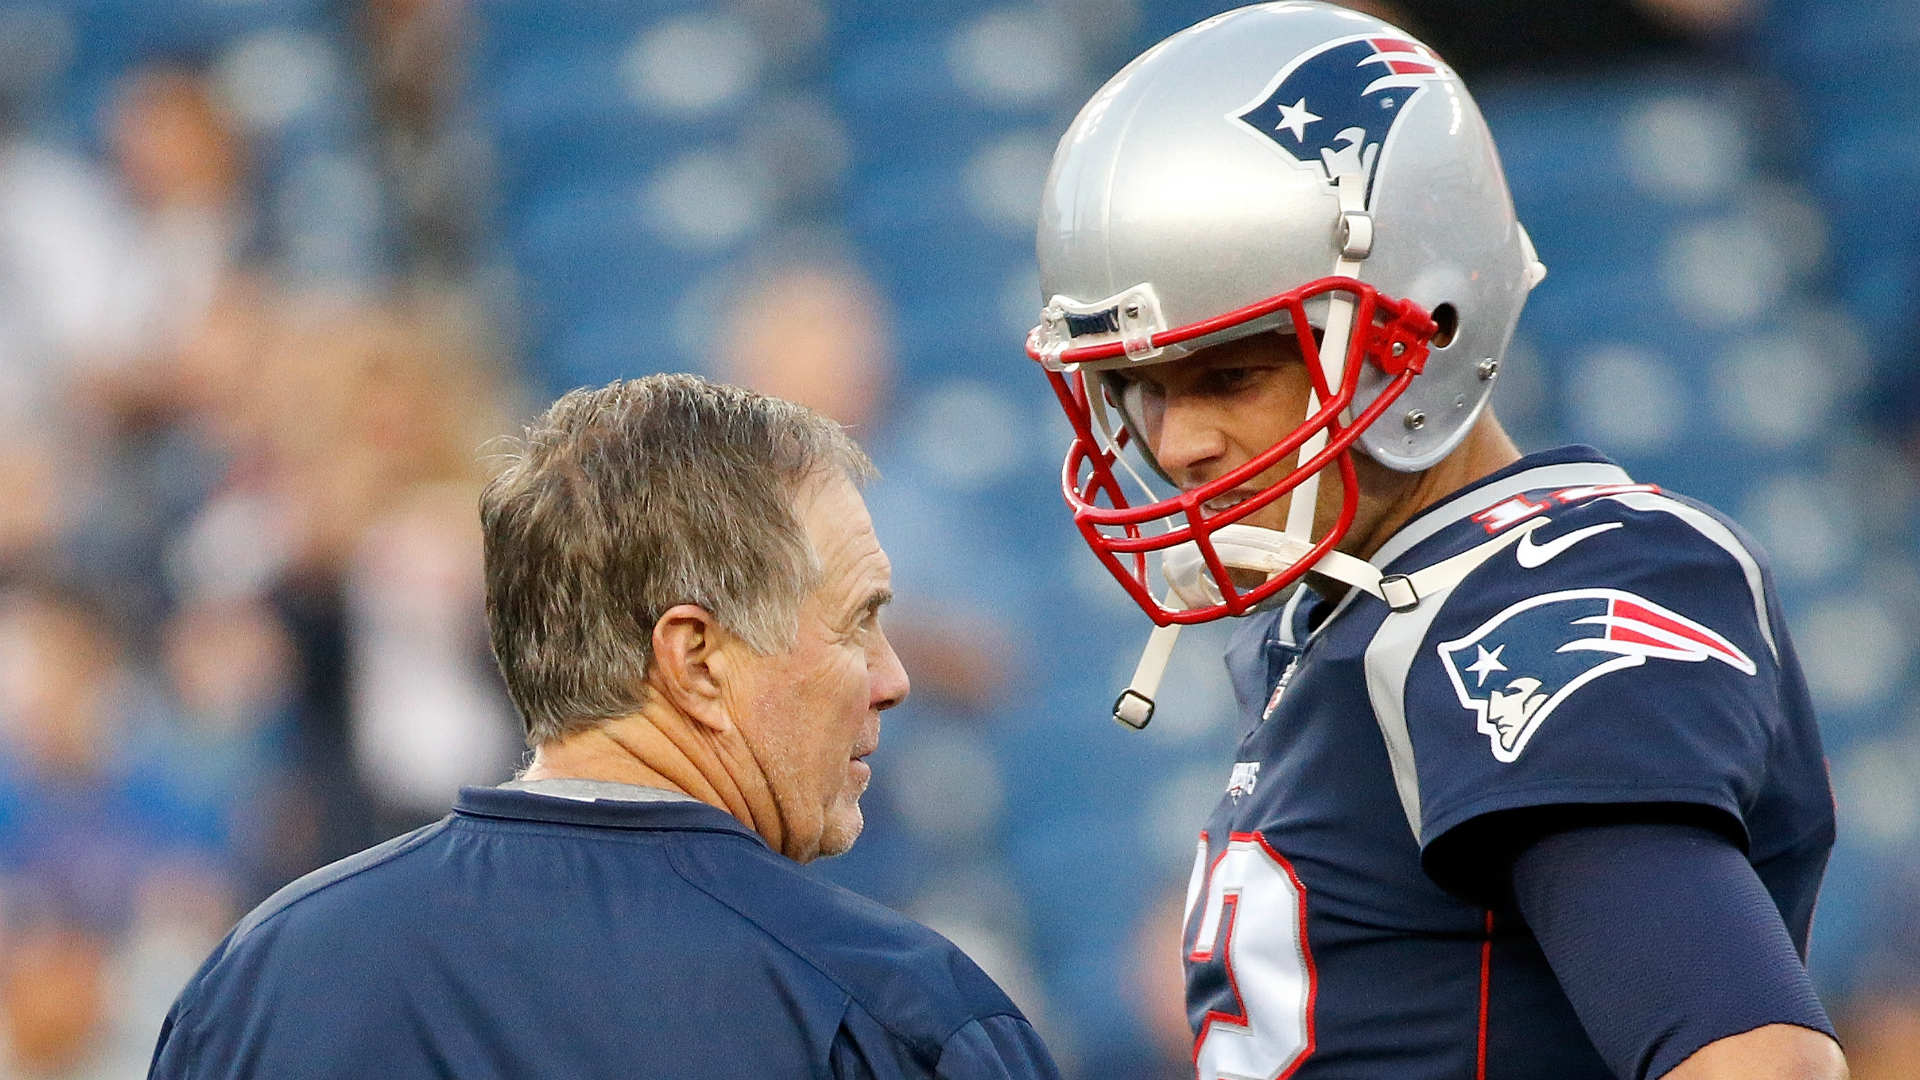 Bill Belichick says he will 'absolutely' coach Patriots next season